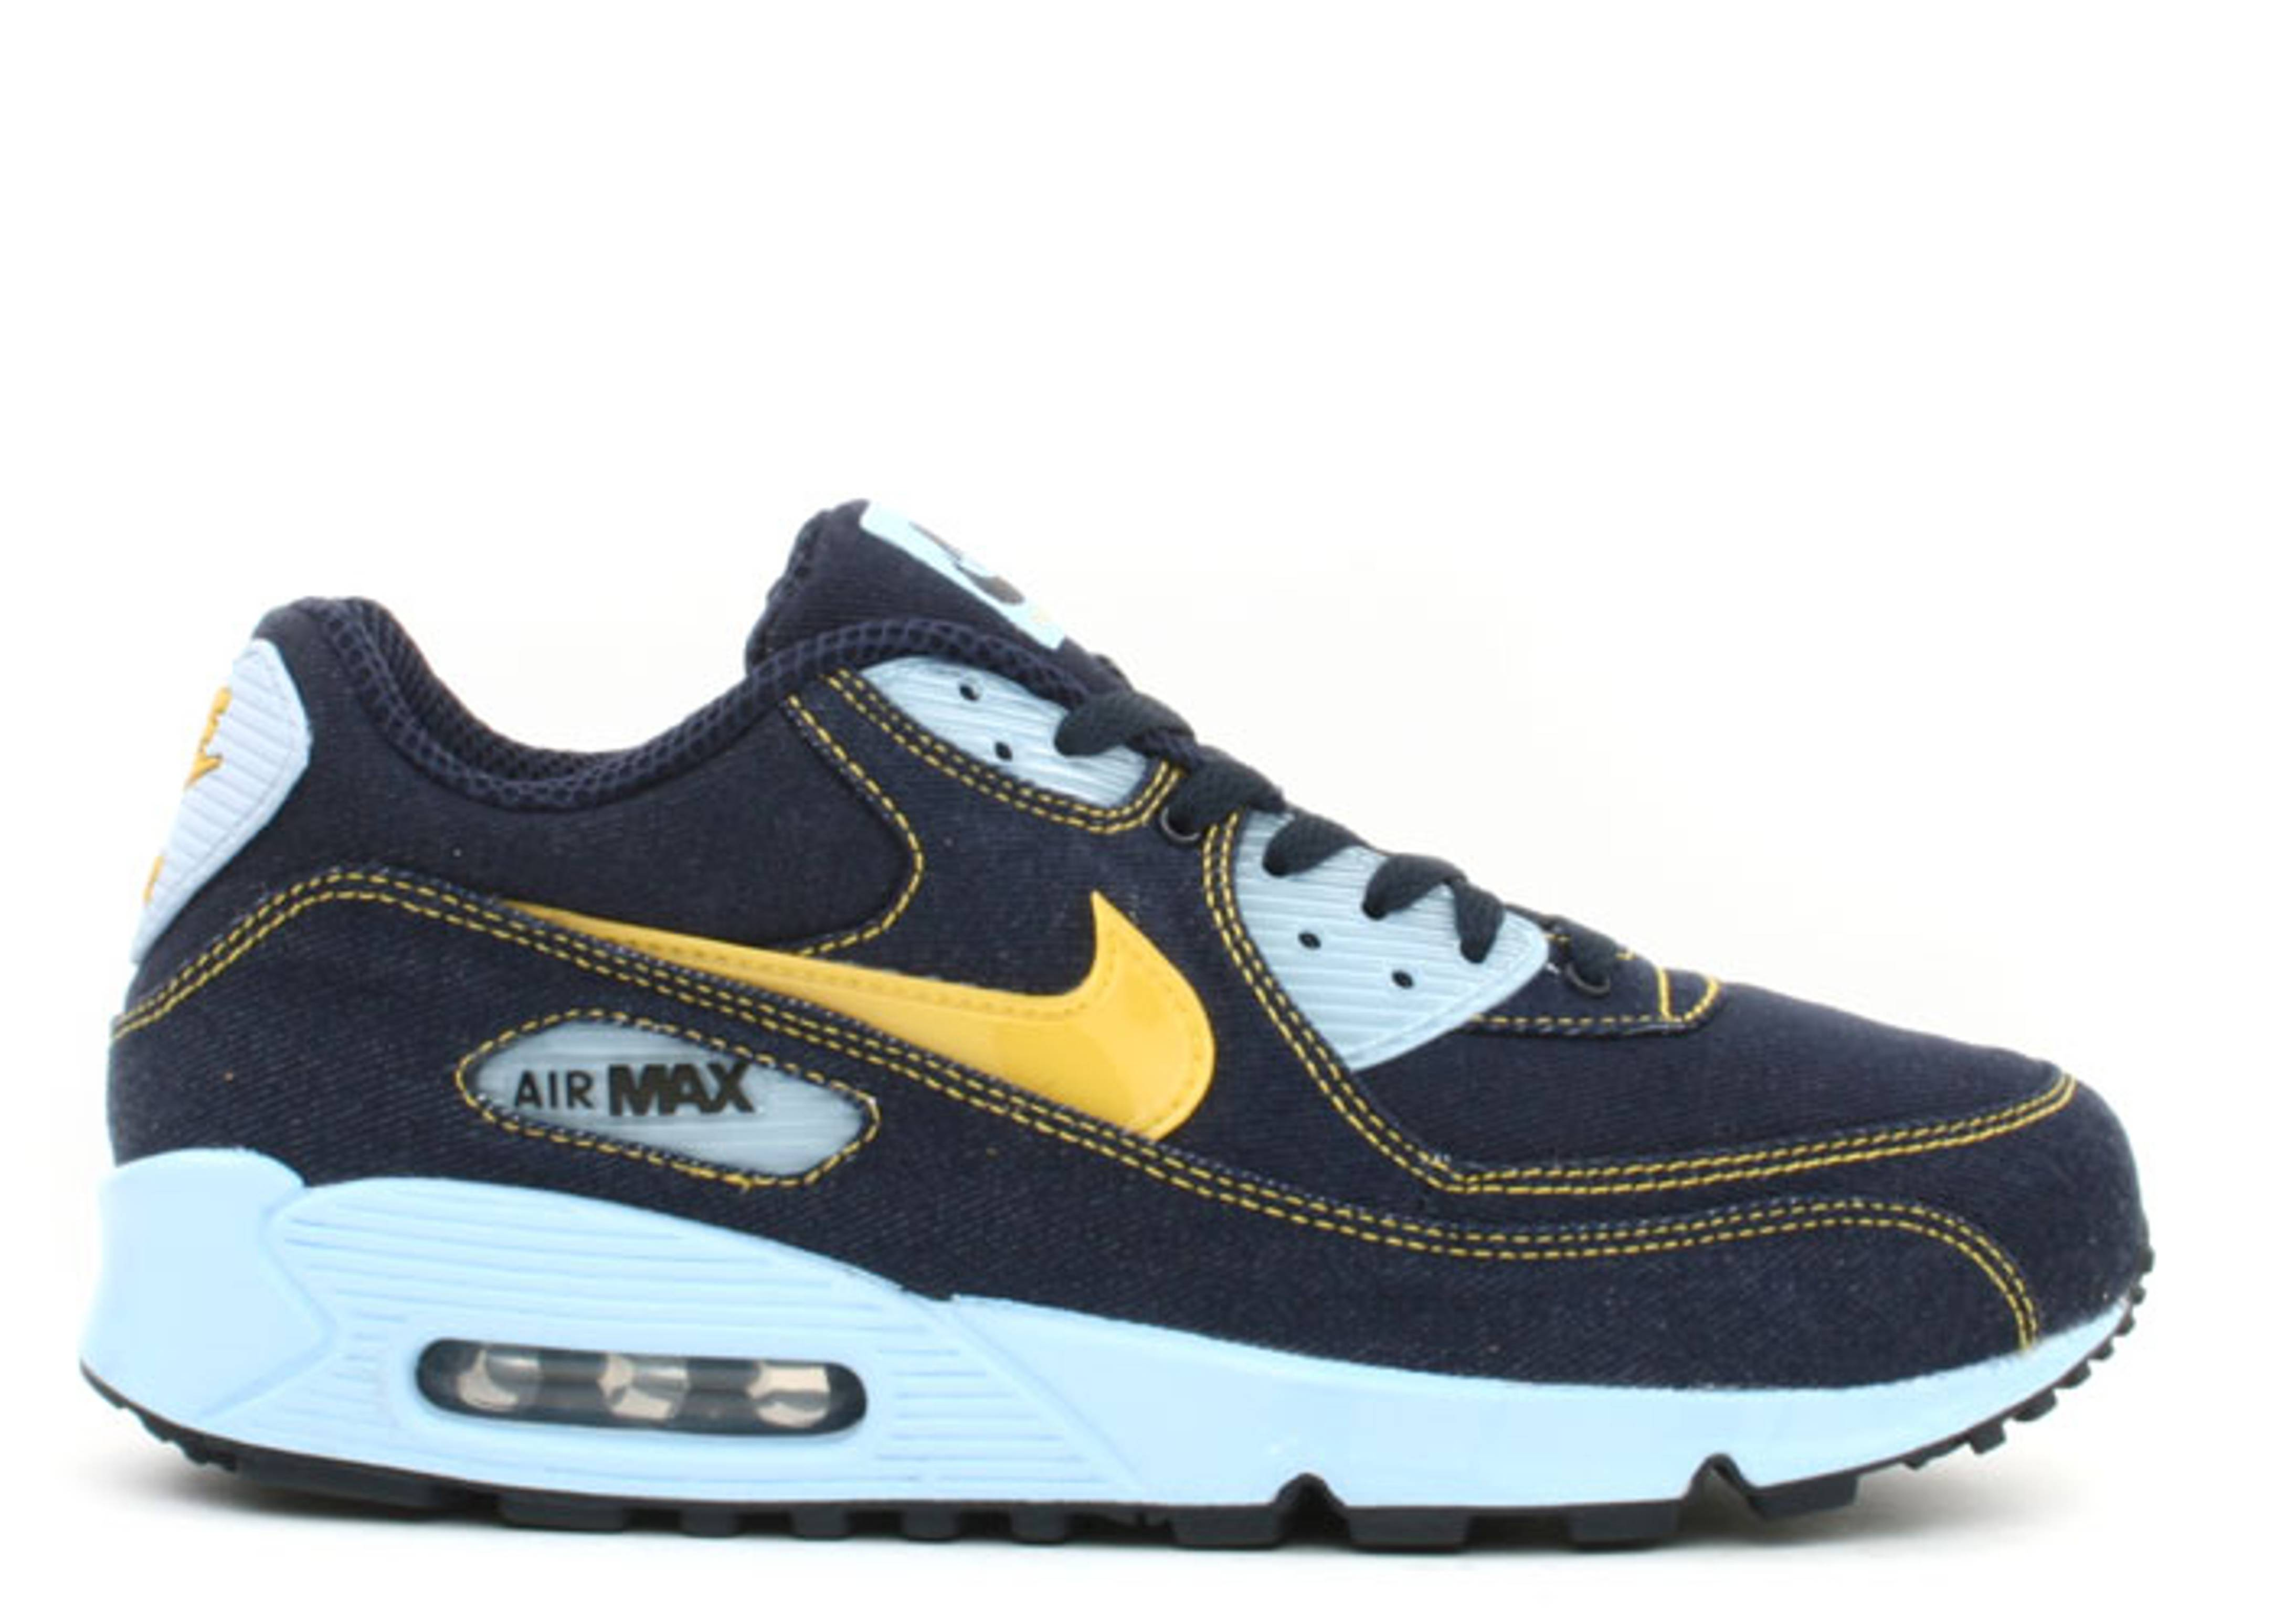 The Best Choice US Men's Nike Air Max 90 Ice Running Shoes Barely BlueWhitePhoto Blue Hot Sale Online